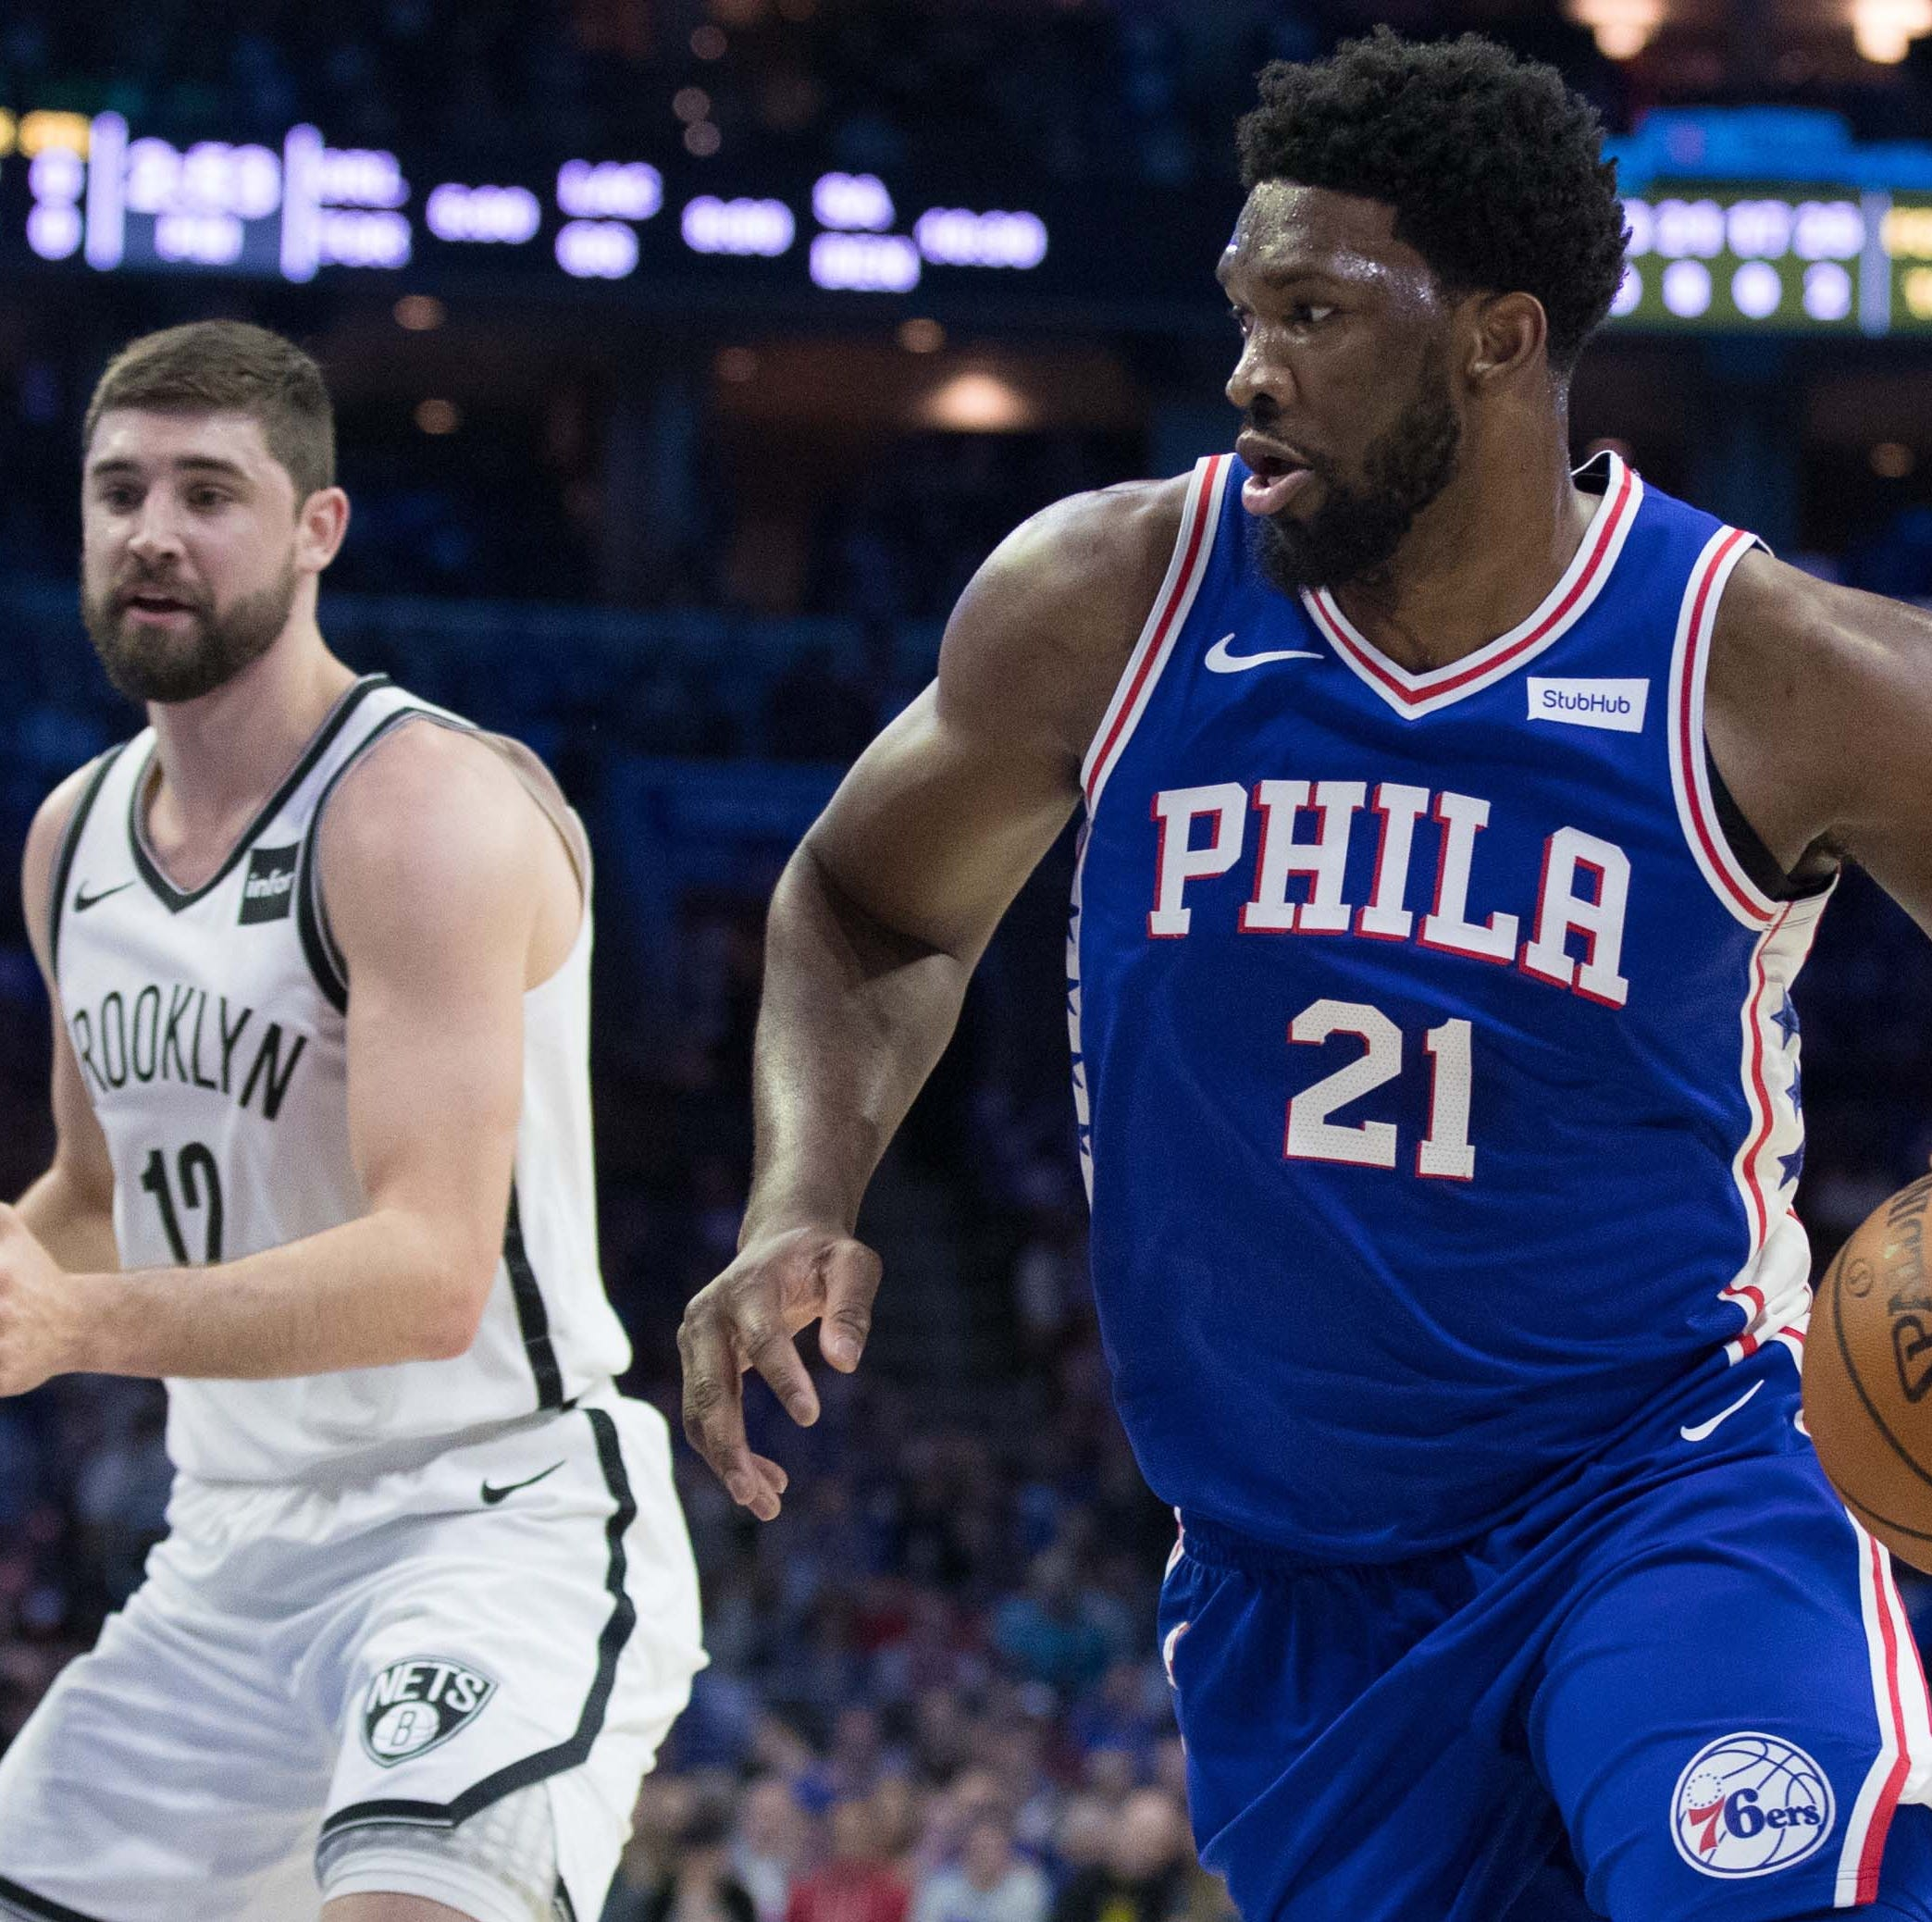 From looking at phone to criticizing booing fans, Sixers embarrass themselves in loss to Nets